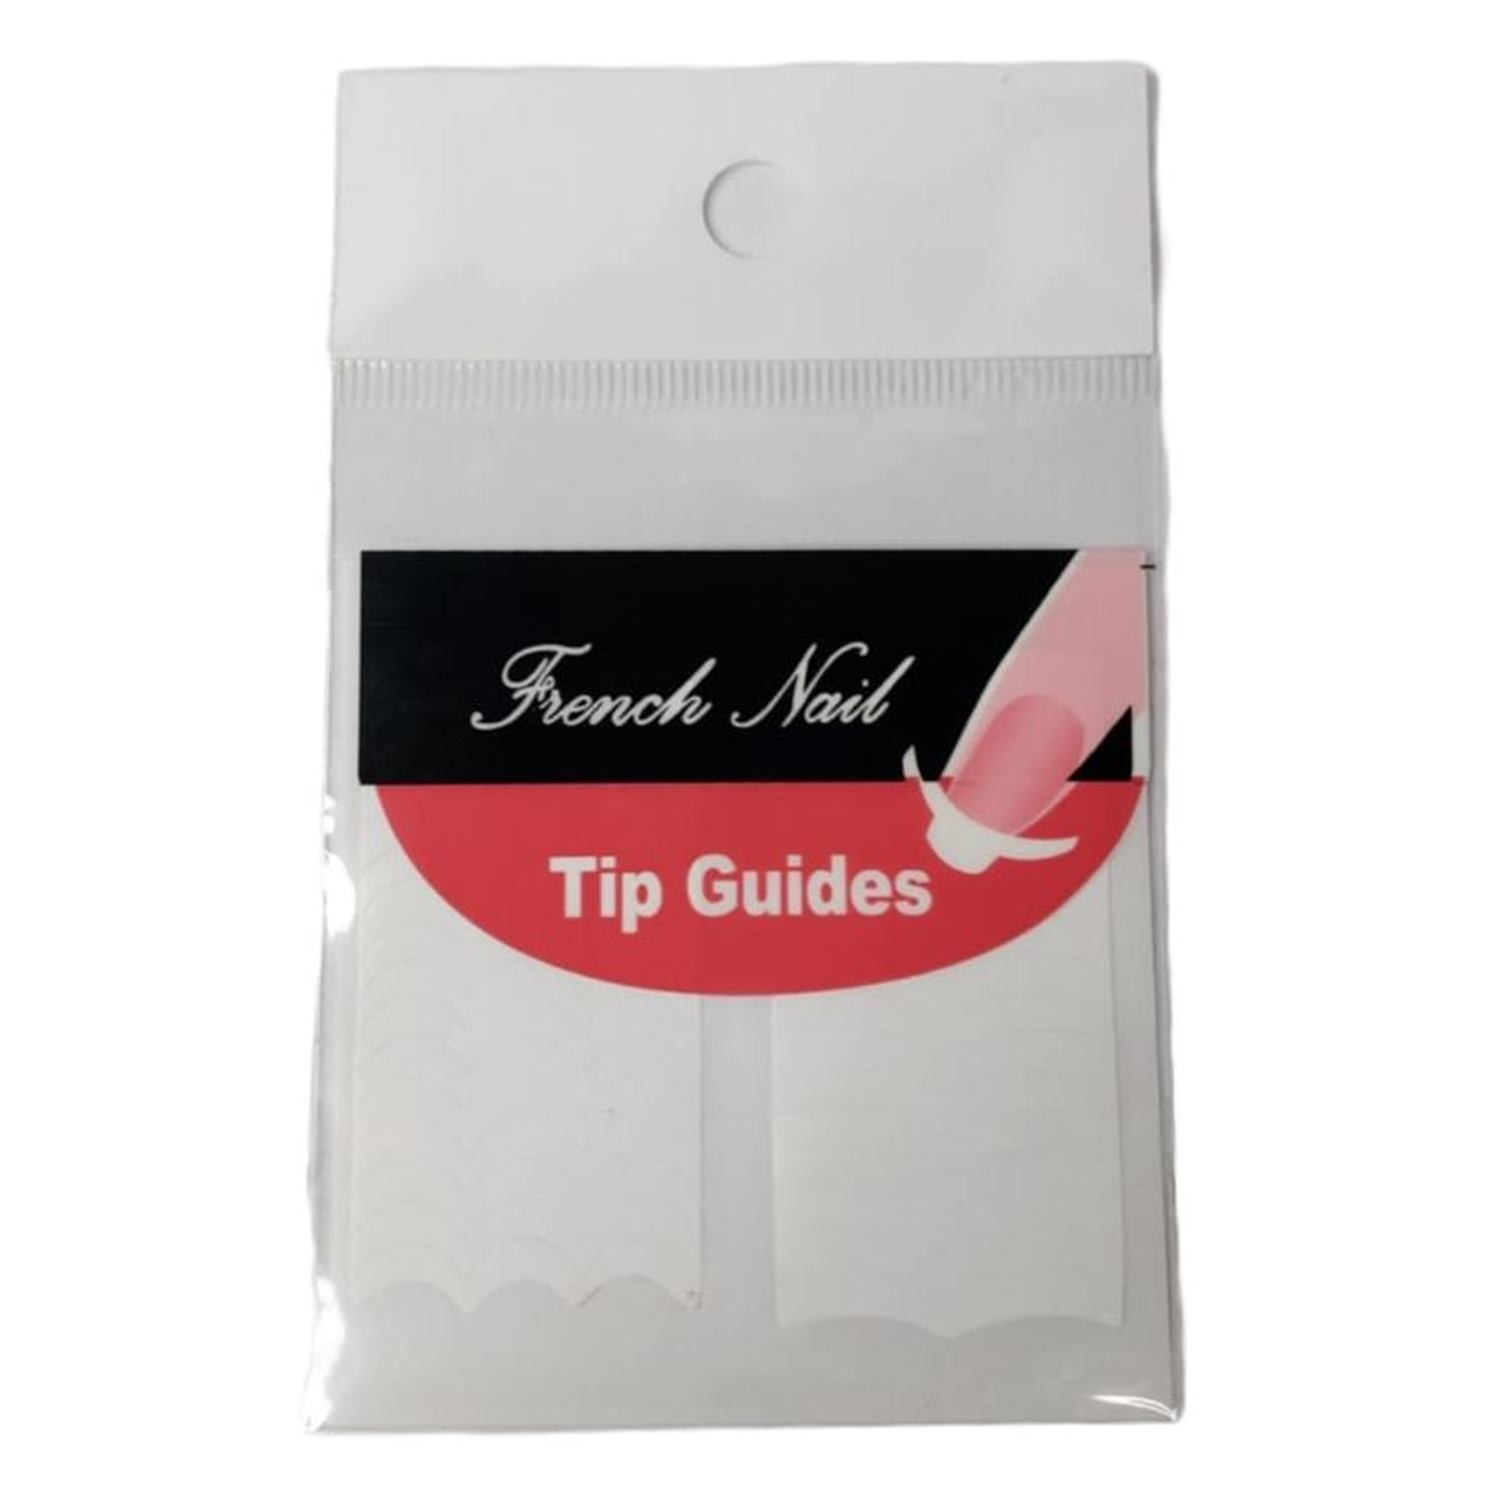 Tip Guides